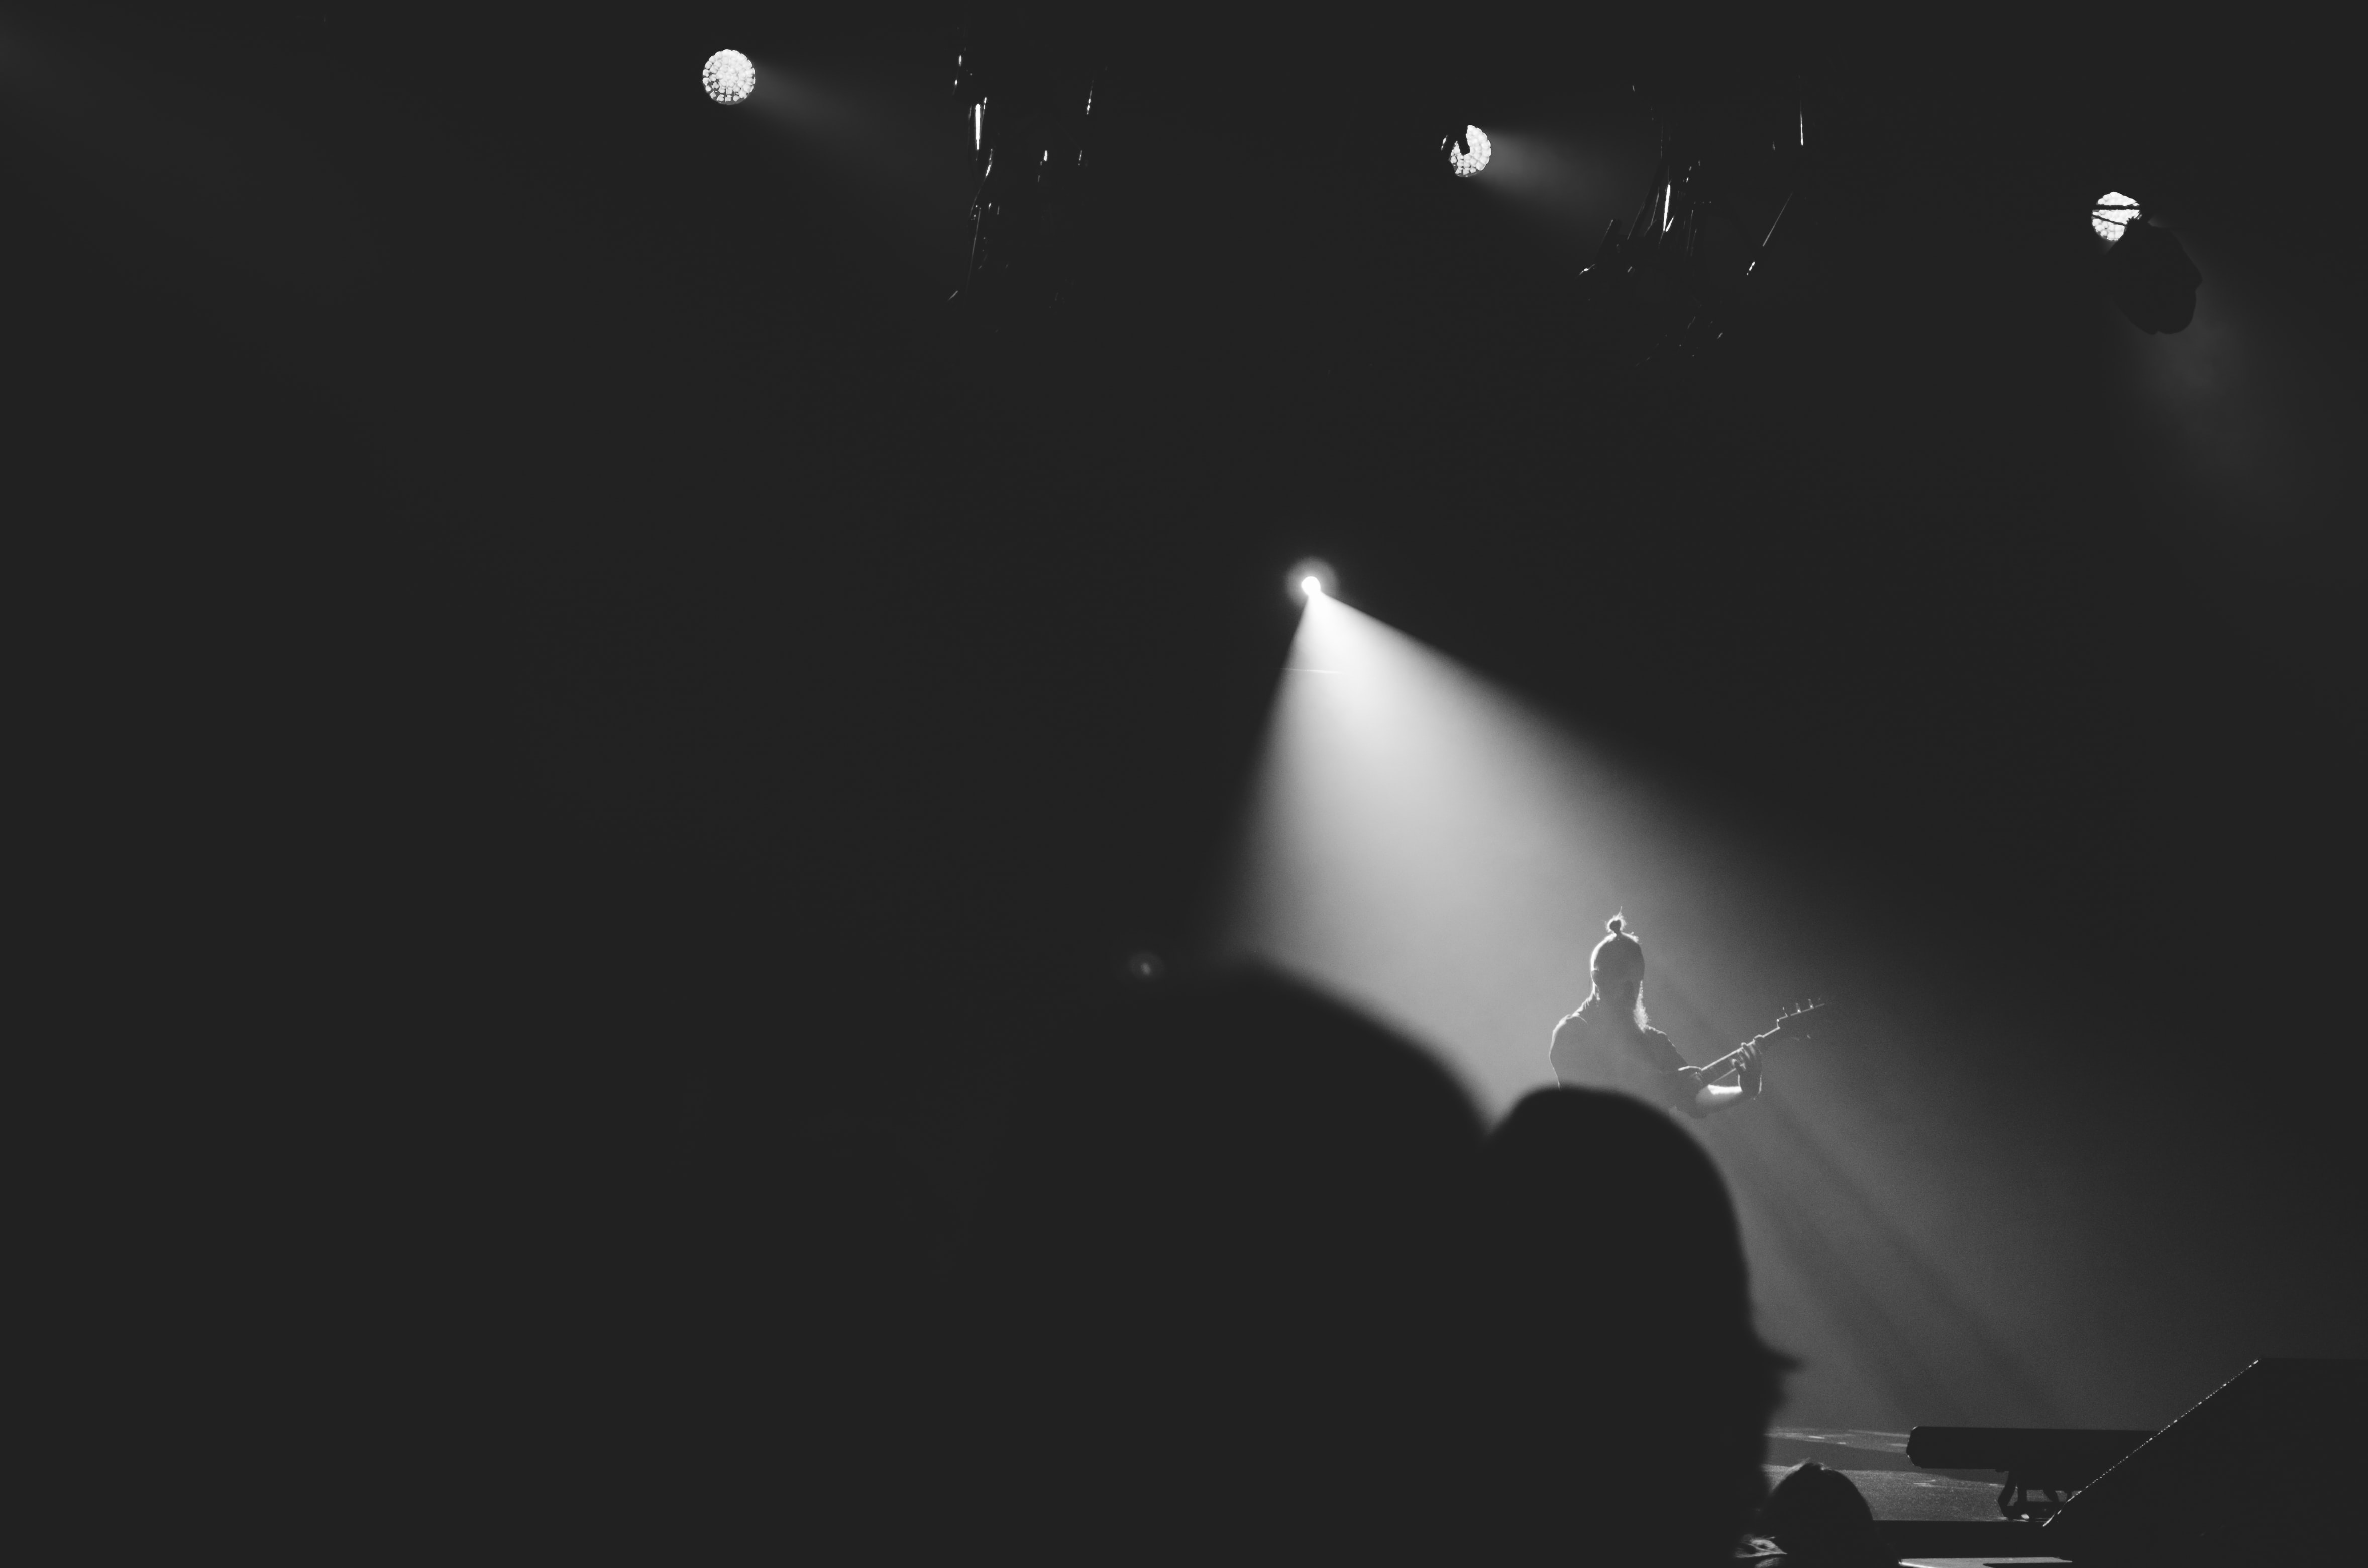 A guitar player illuminated by white floodlights in the middle of a dark stage